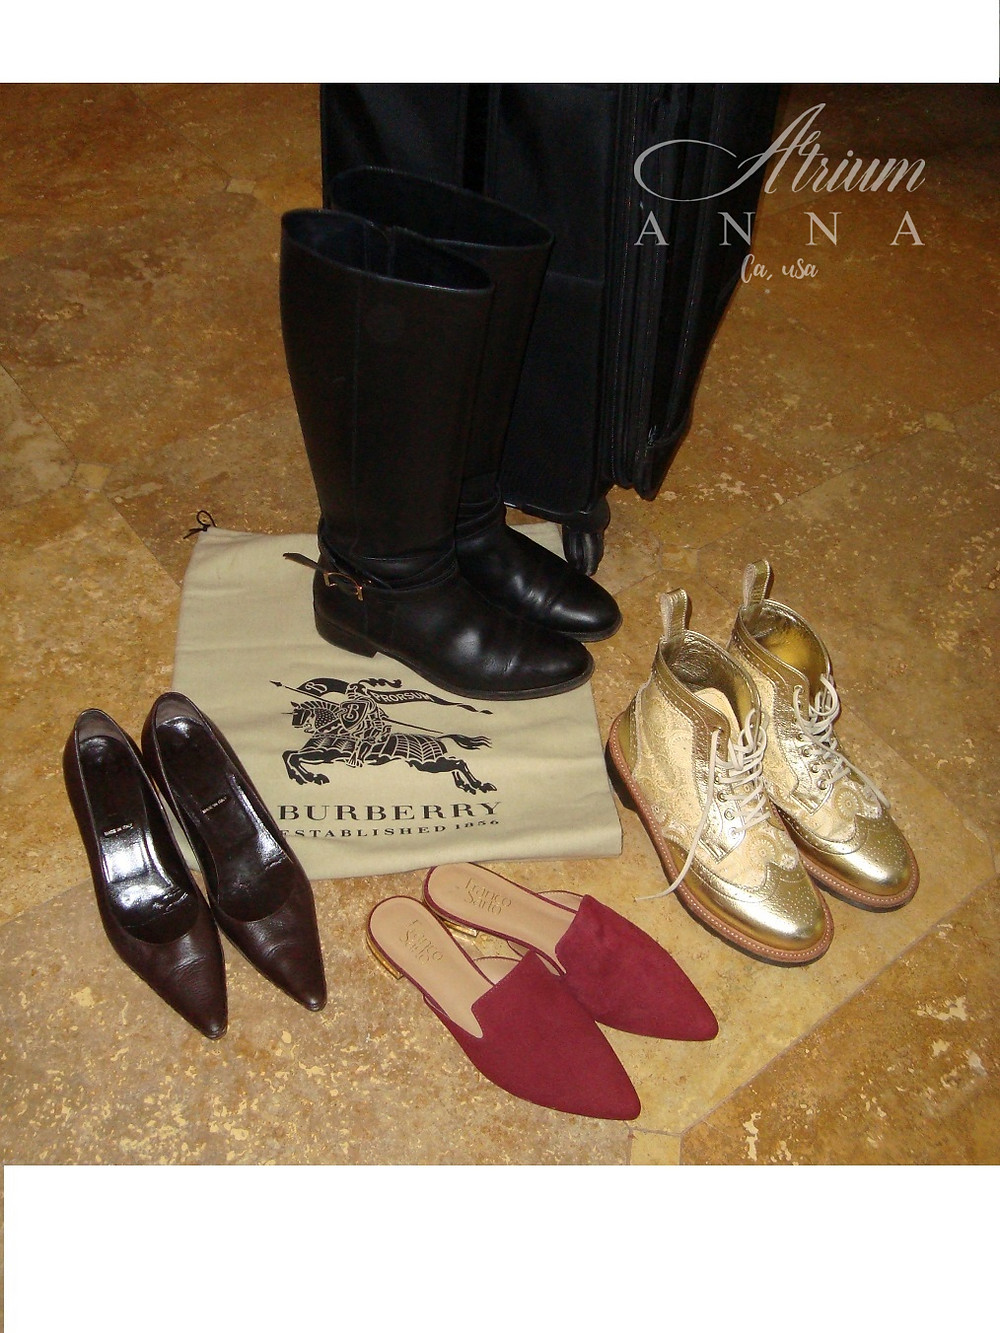 Burberry riding boots, Fendi kitten heels, Doc Martens ankle boots, and Franco Sarto slides